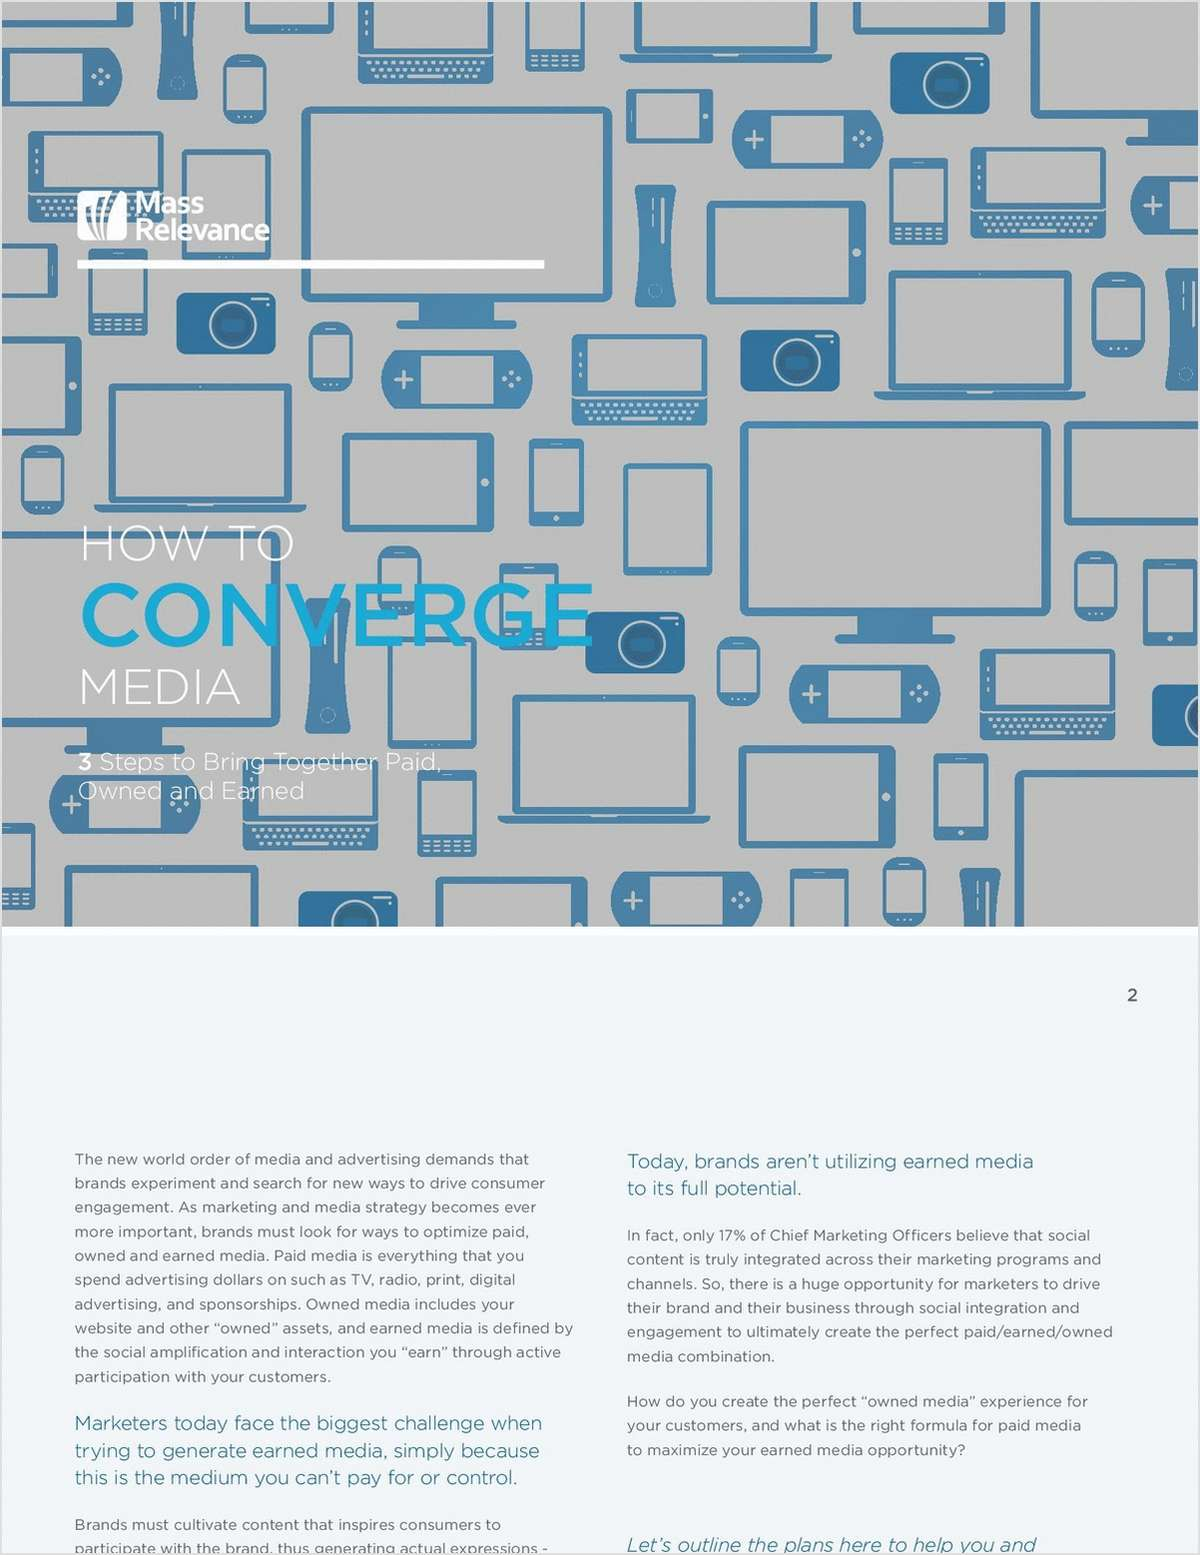 How to Converge Media